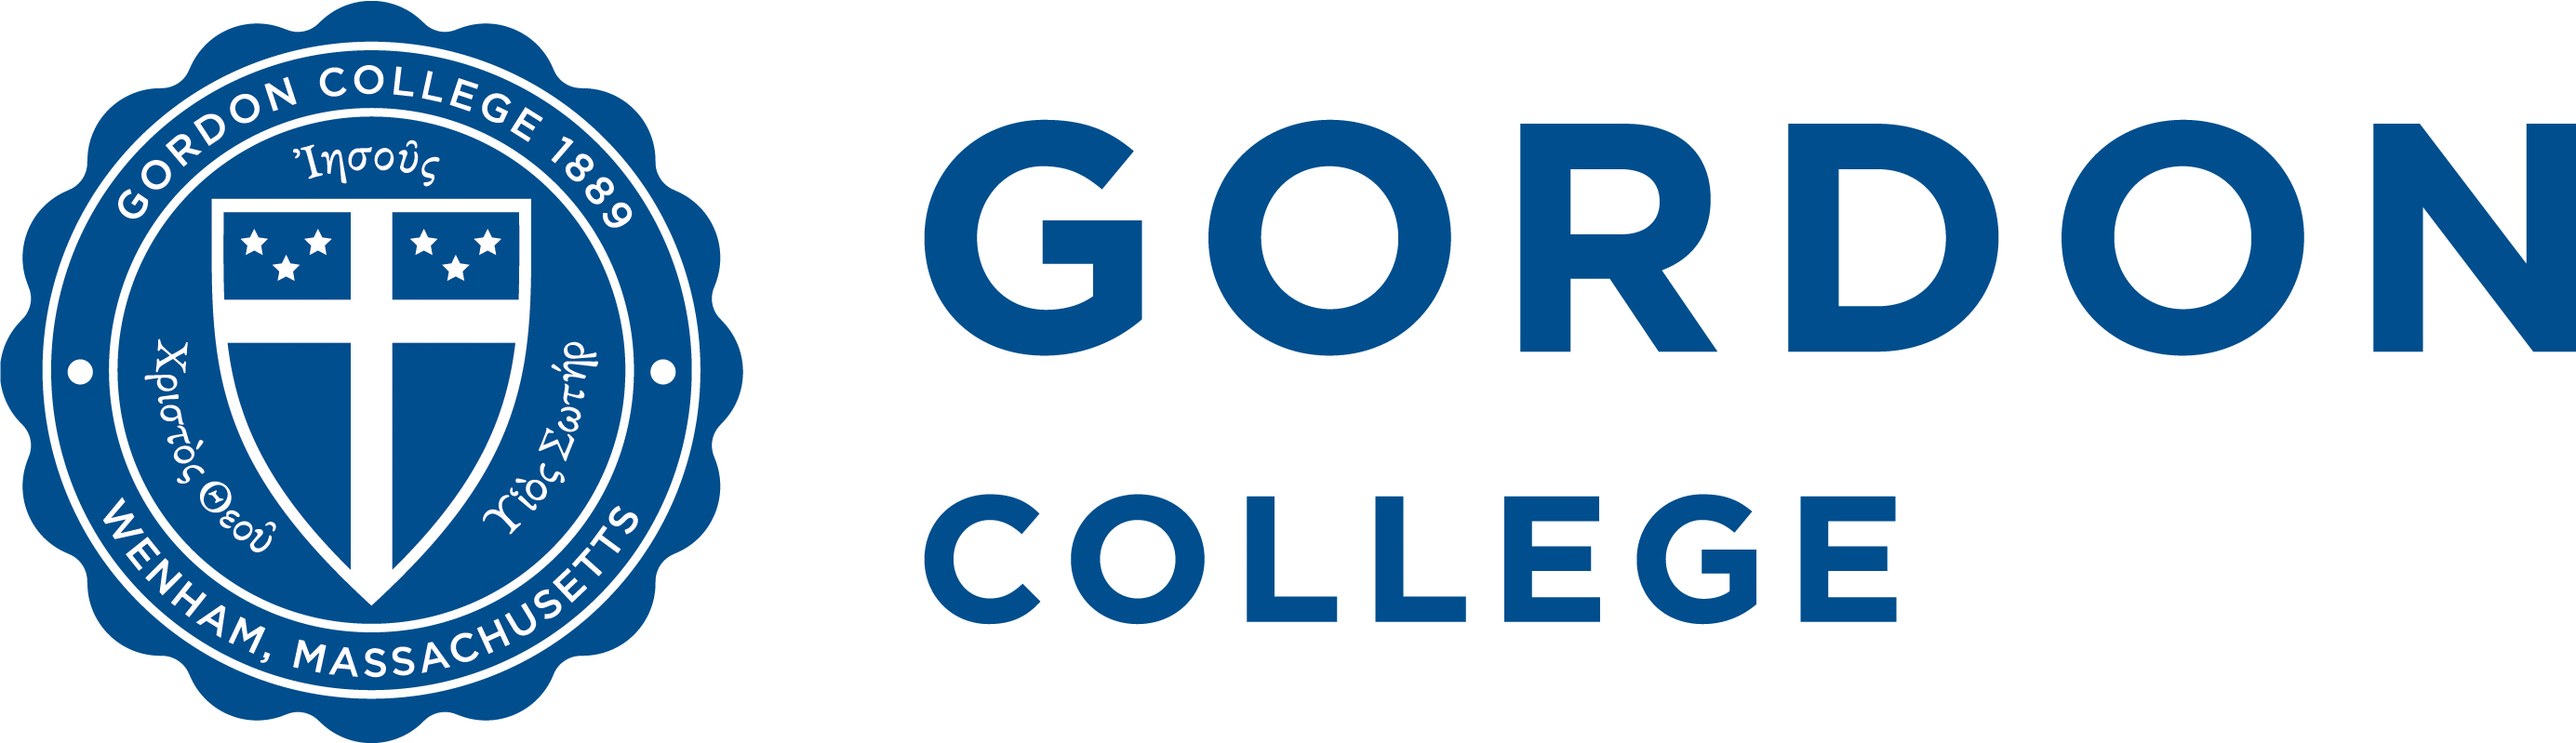 Image: Gordon College logo